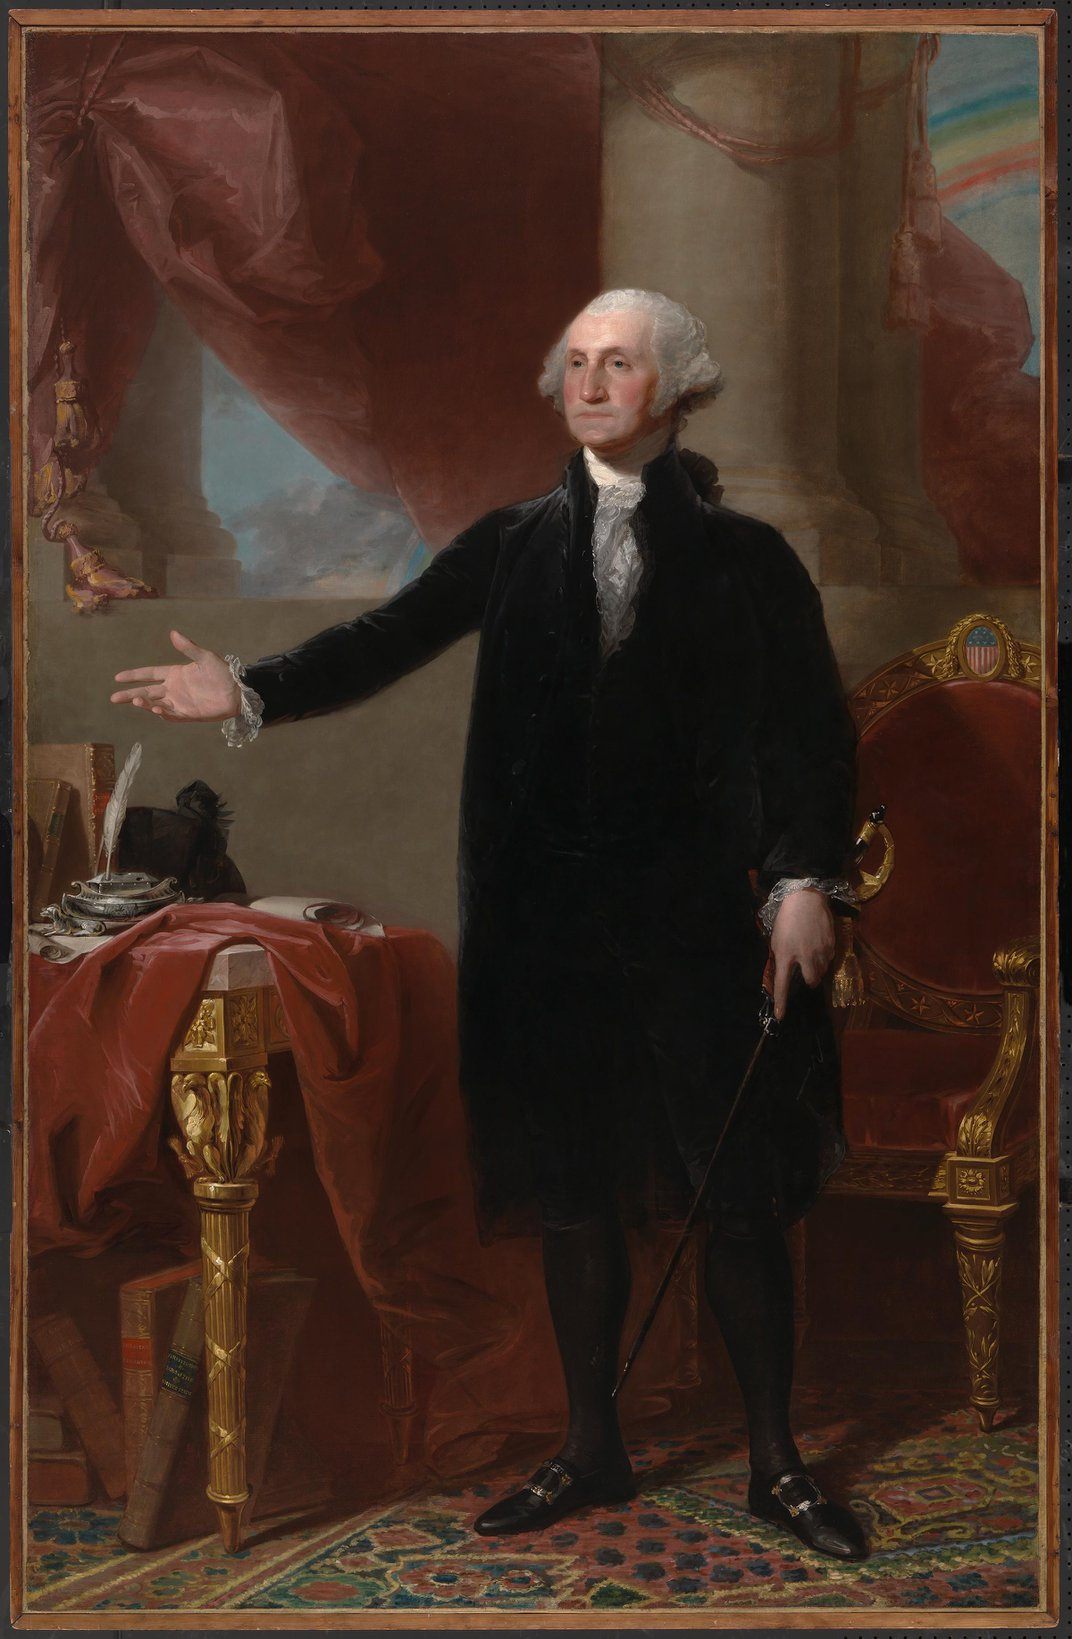 A Rainbow Shines Anew in National Portrait Gallery's Iconic George Washington Portrait